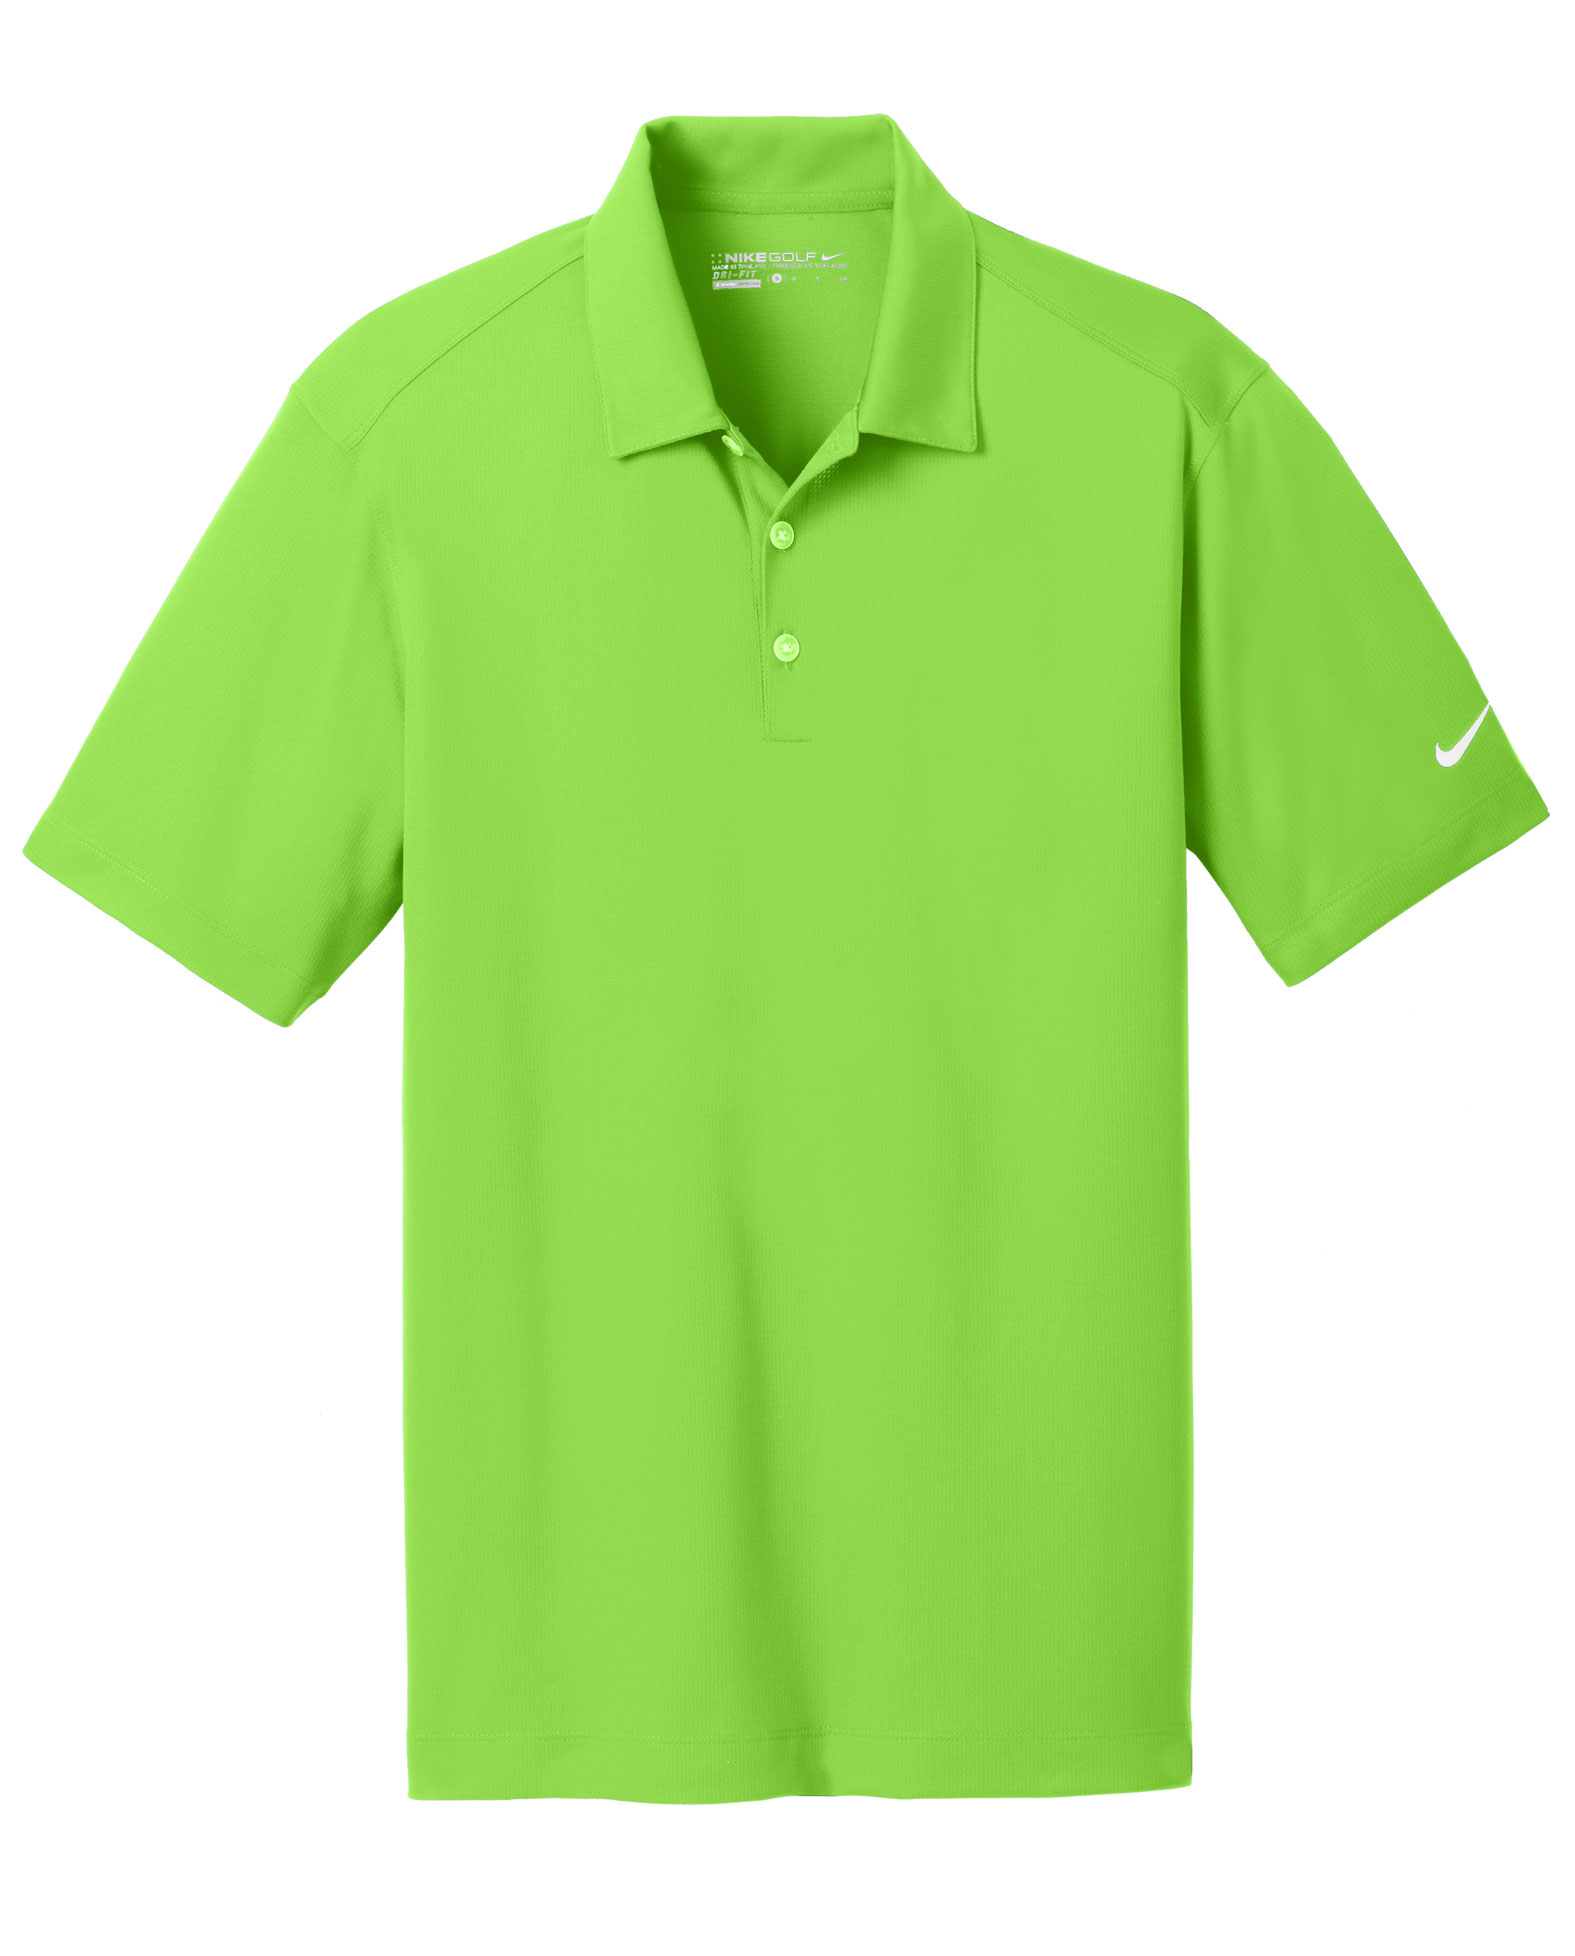 Nike Golf Mens Dri-Fit Vertical Mesh Polo